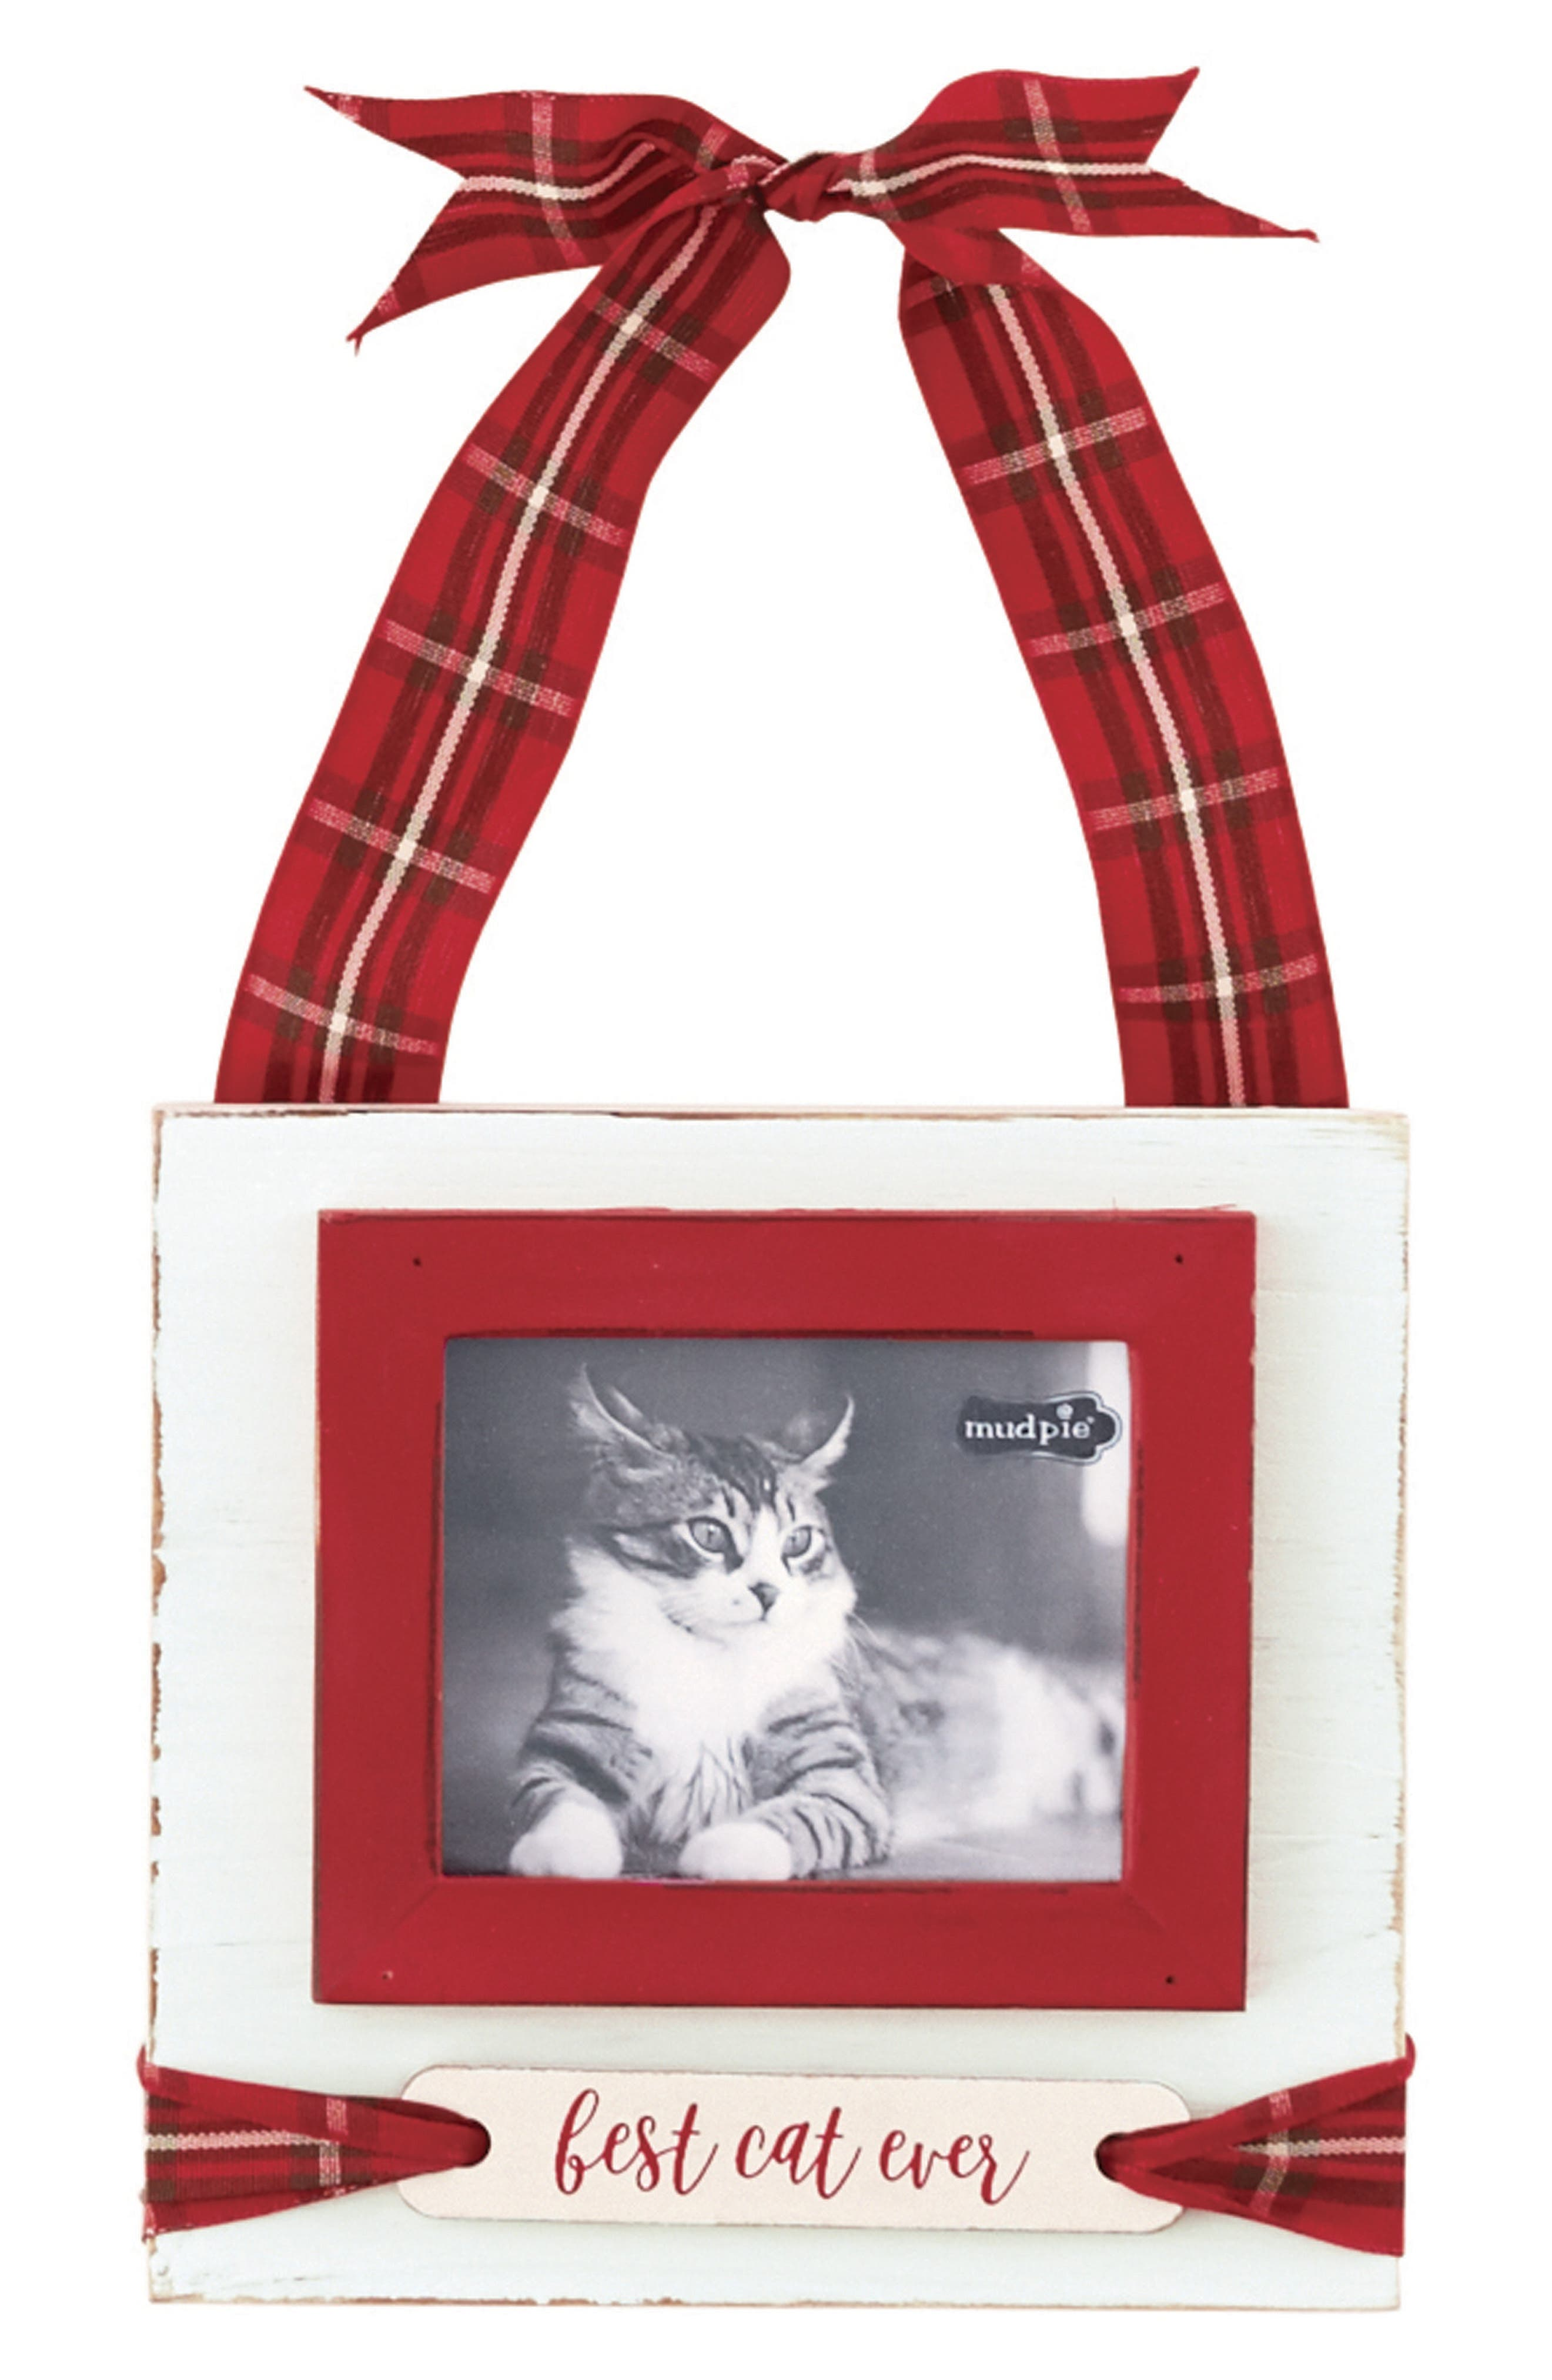 Alternate Image 1 Selected - Mud Pie Best Cat Ever Hanging Frame Ornament